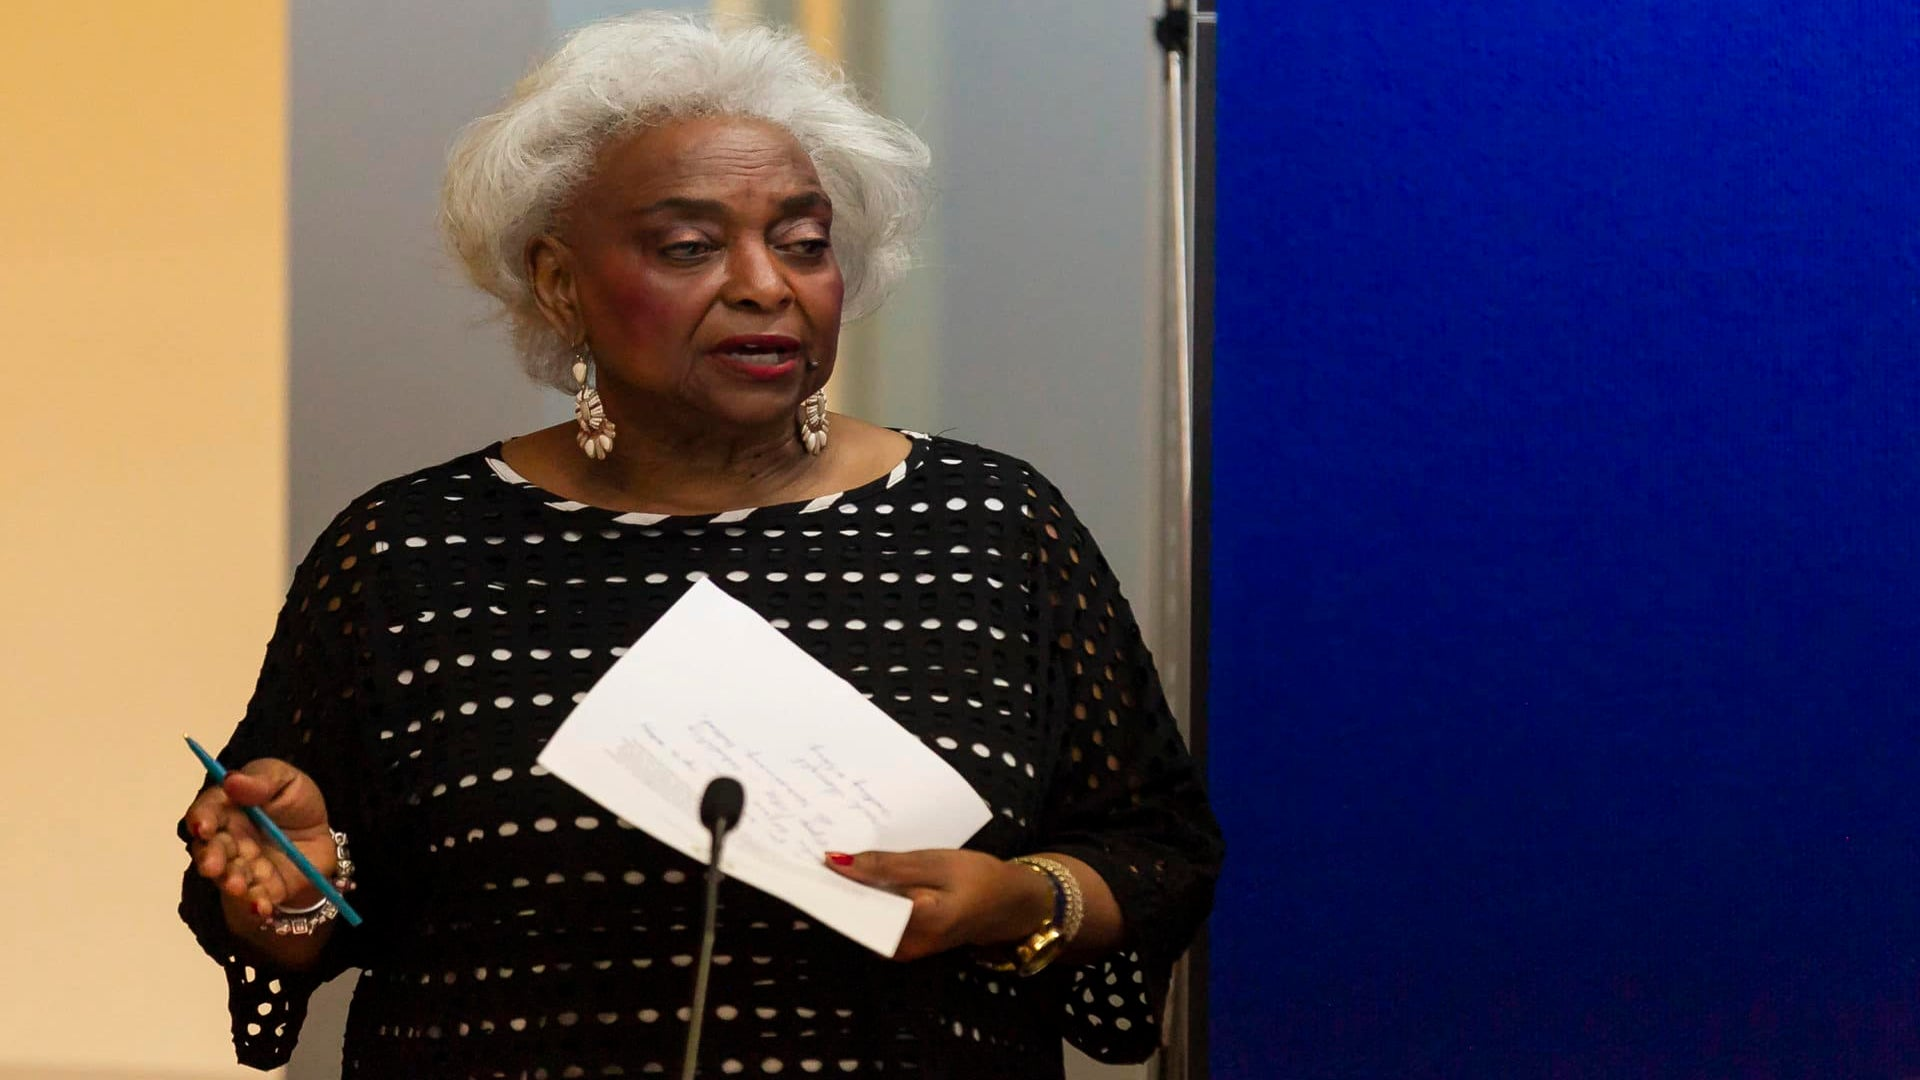 Florida Election Official Brenda Snipes Takes Back Resignation